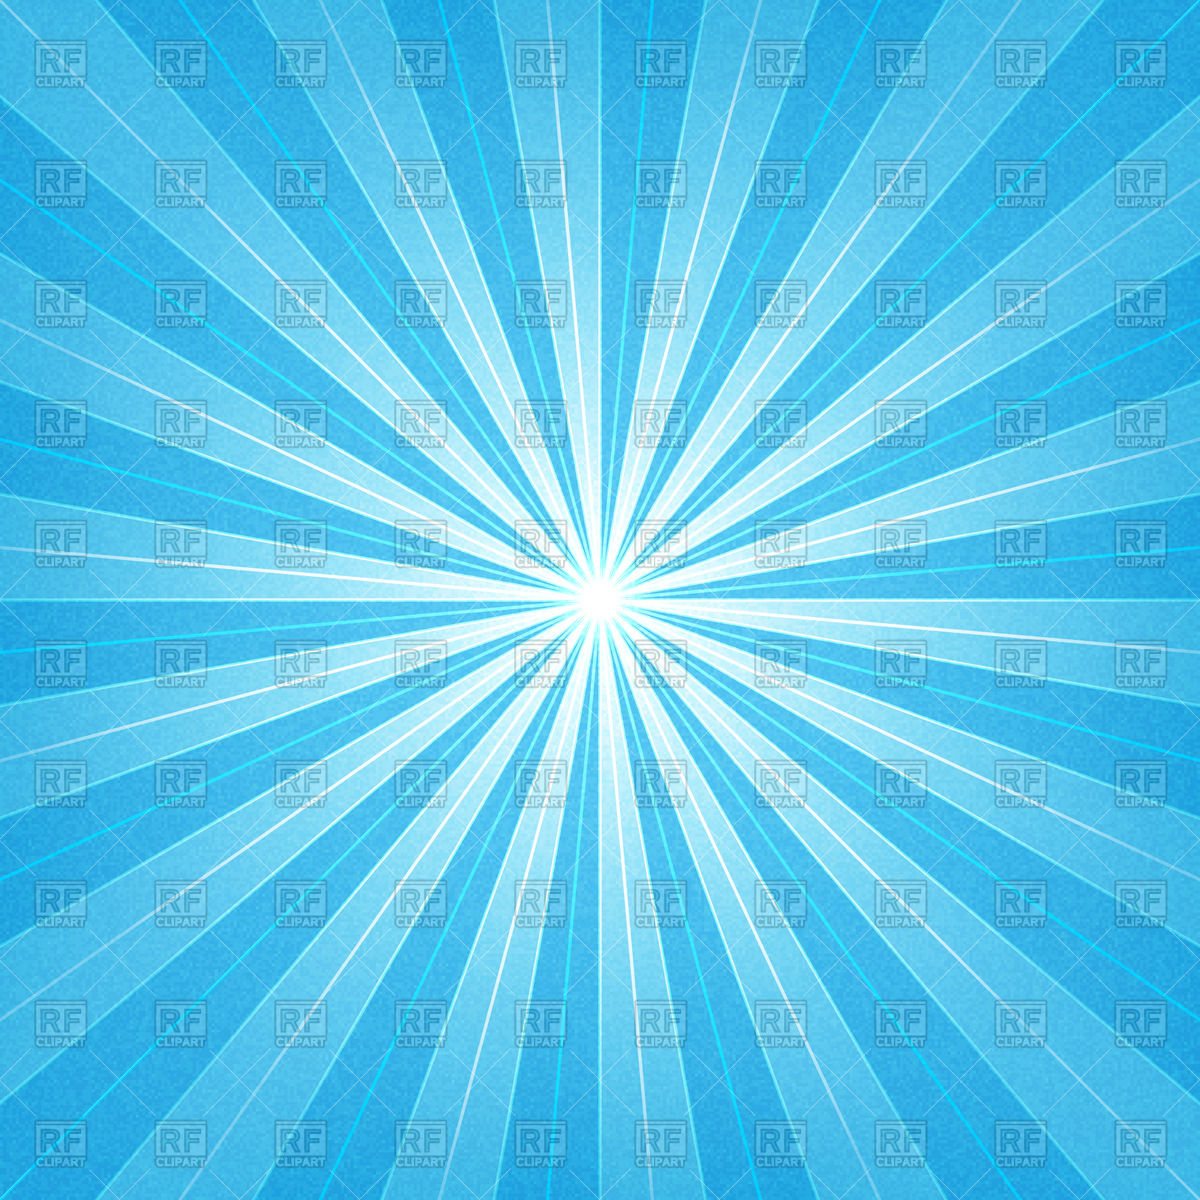 Textured background with blue sunbeams Vector Image of Backgrounds 1200x1200